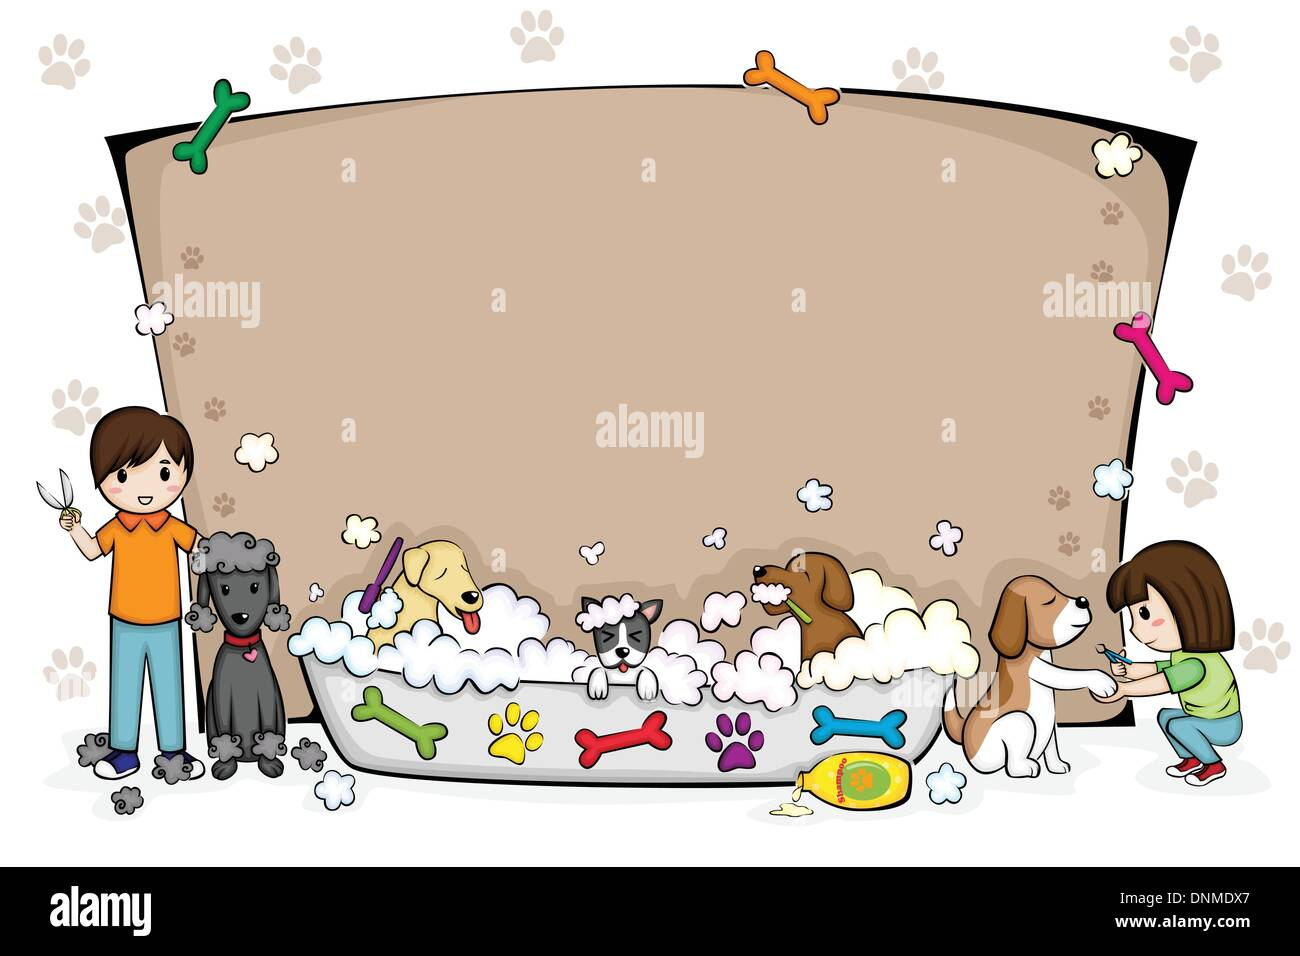 A vector illustration of a pets grooming salon banner - Stock Image